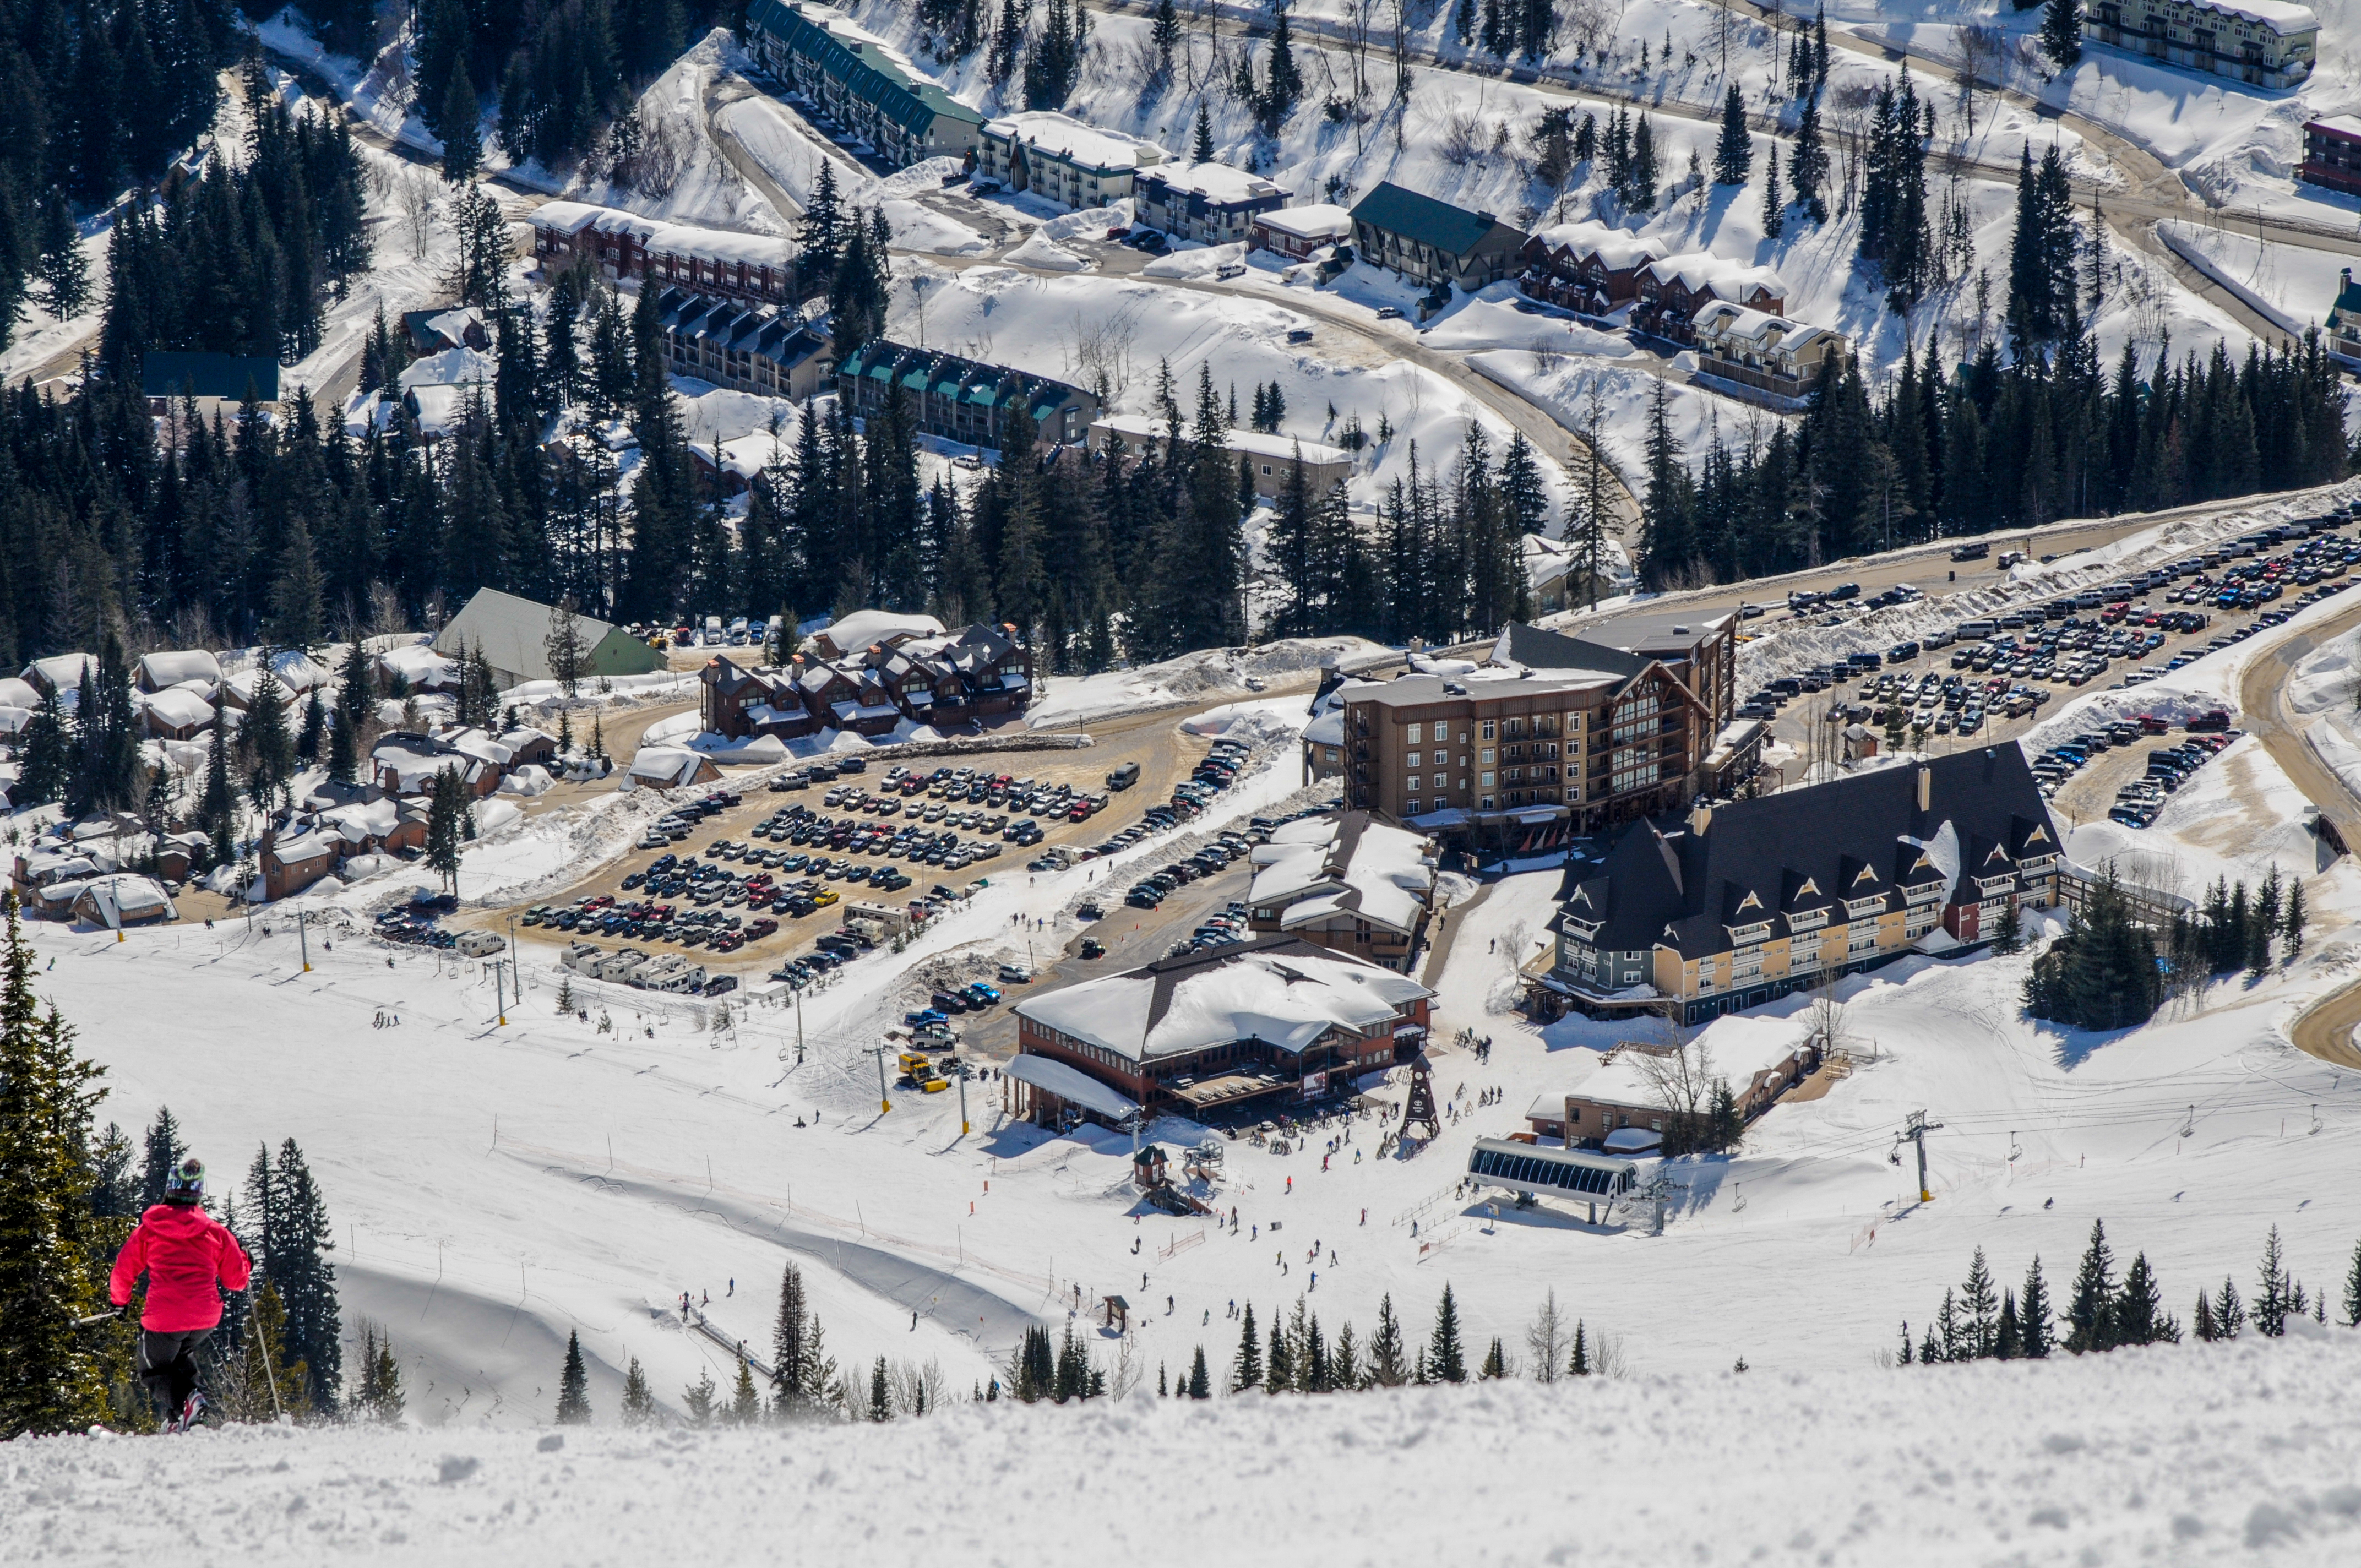 An aerial view of a ski area parking lot from a ski run. There is snow surrounding cars in parking lots, and multiple lodges at the base area.